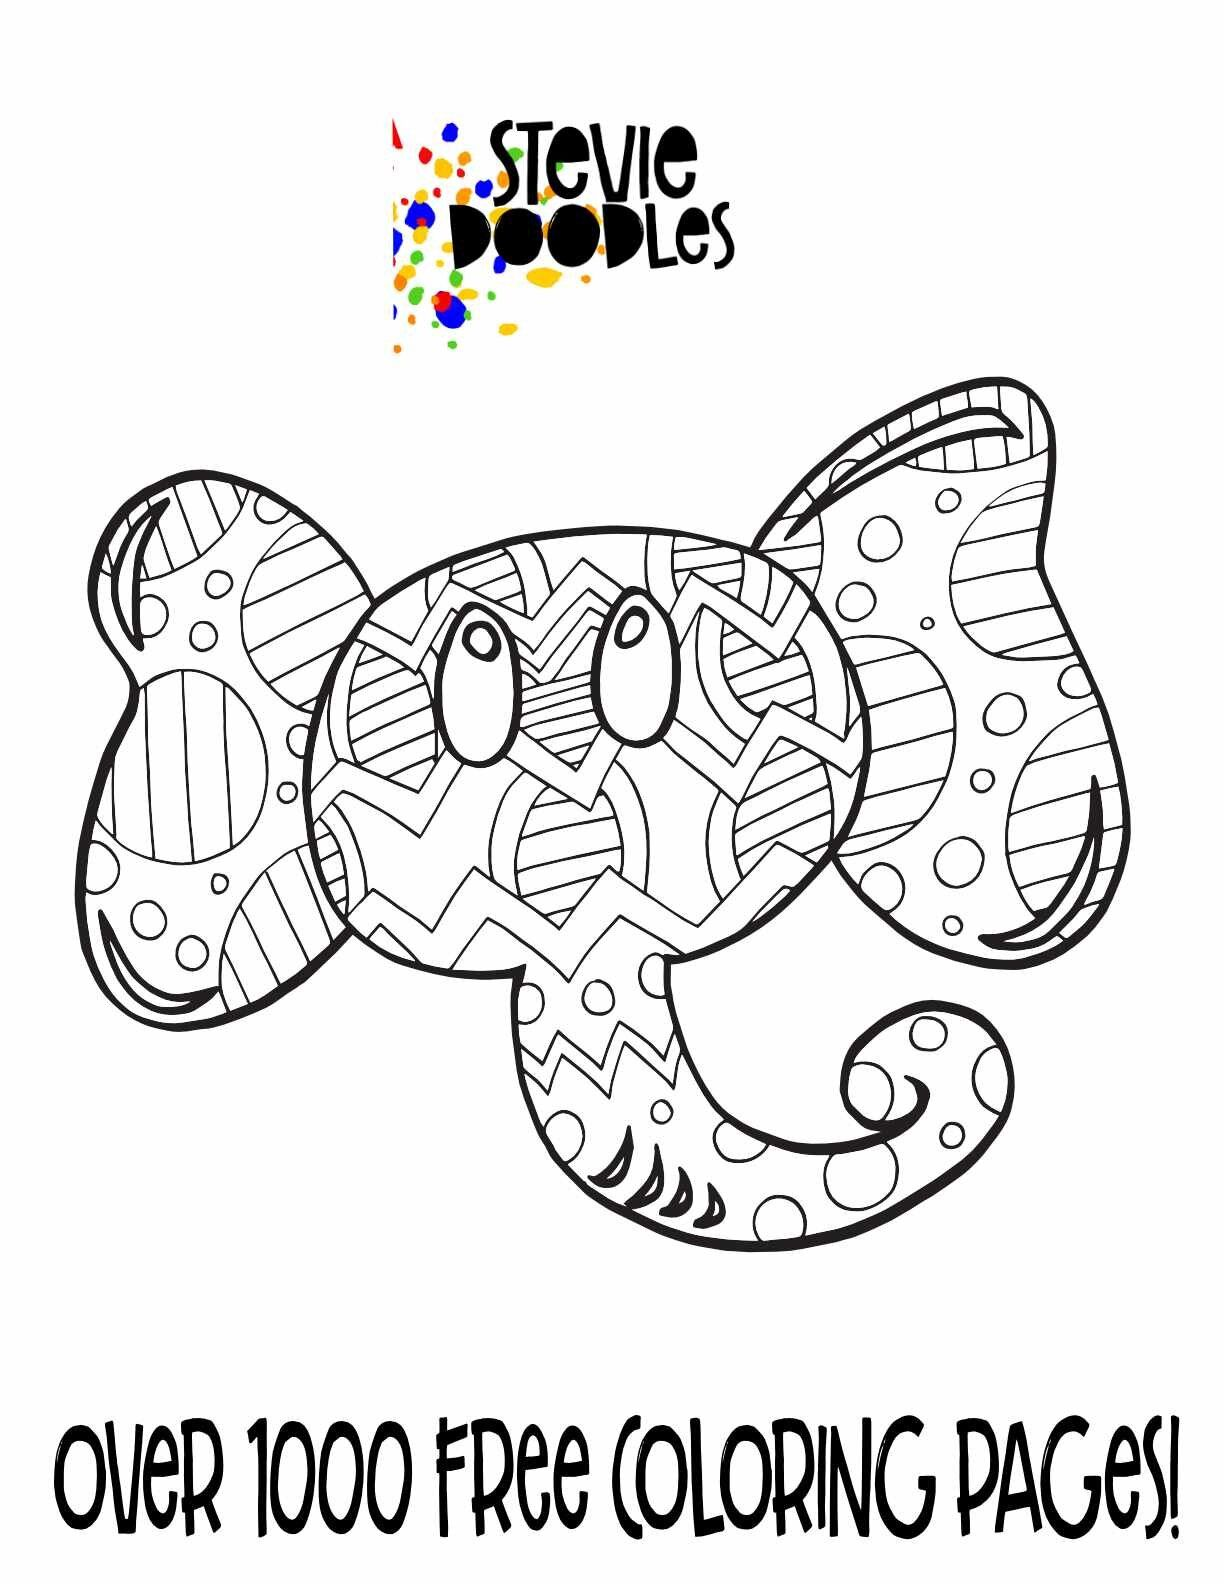 Zoo Animals Work In Progress Adding Pages To This Post As I Go Stevie Doodles Free Coloring Pages Giraffe Coloring Pages Animal Coloring Pages [ 1584 x 1224 Pixel ]